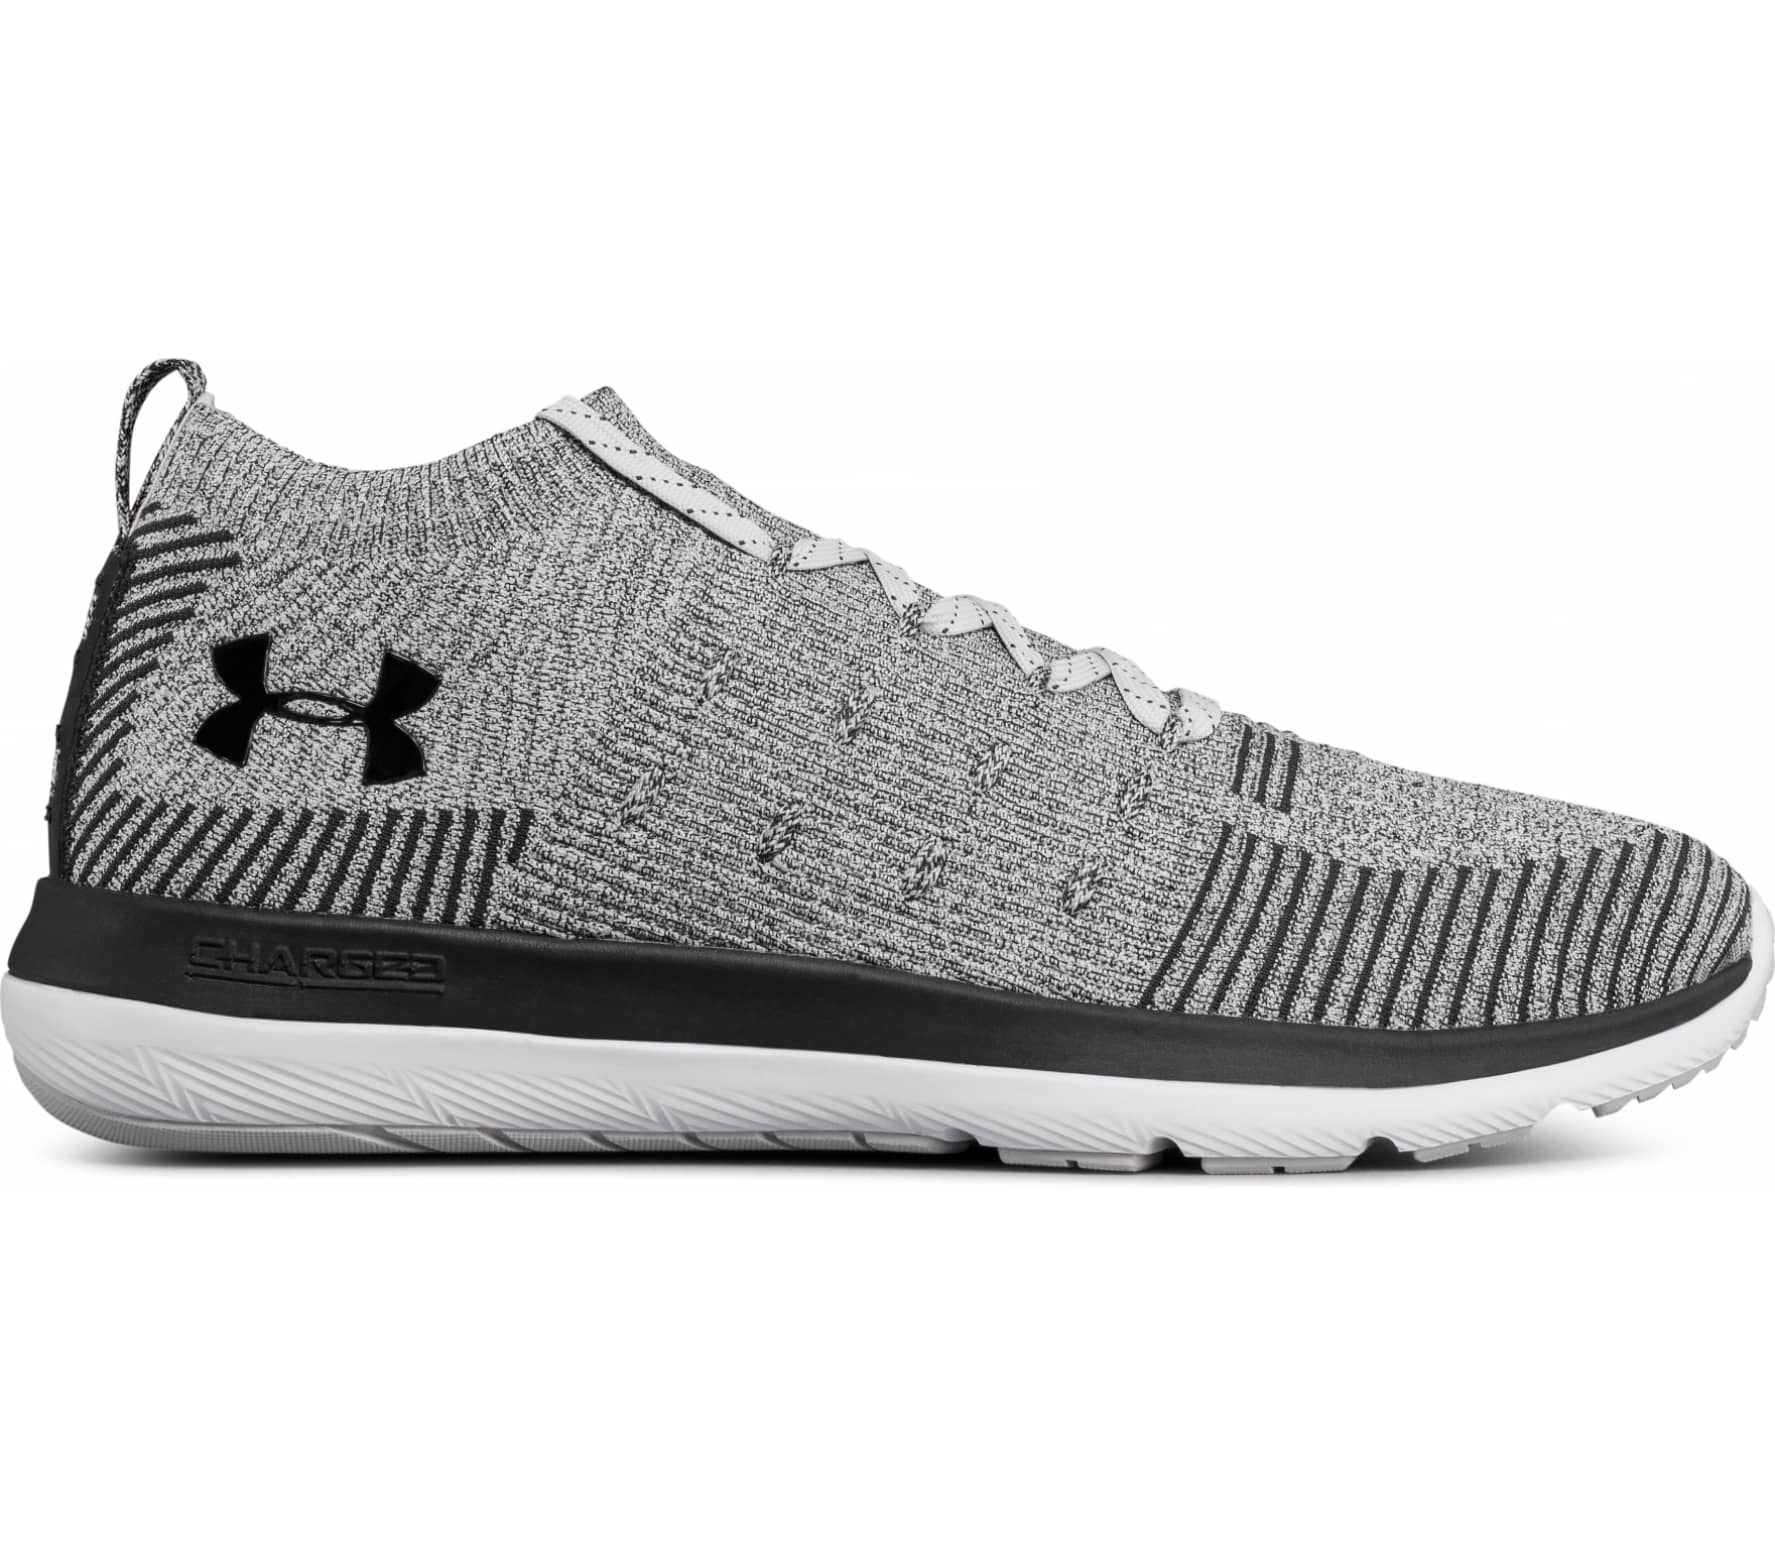 fff8399cd22 Under Armour - Slingflex Rise Hombre Zapatos para correr (gris ...